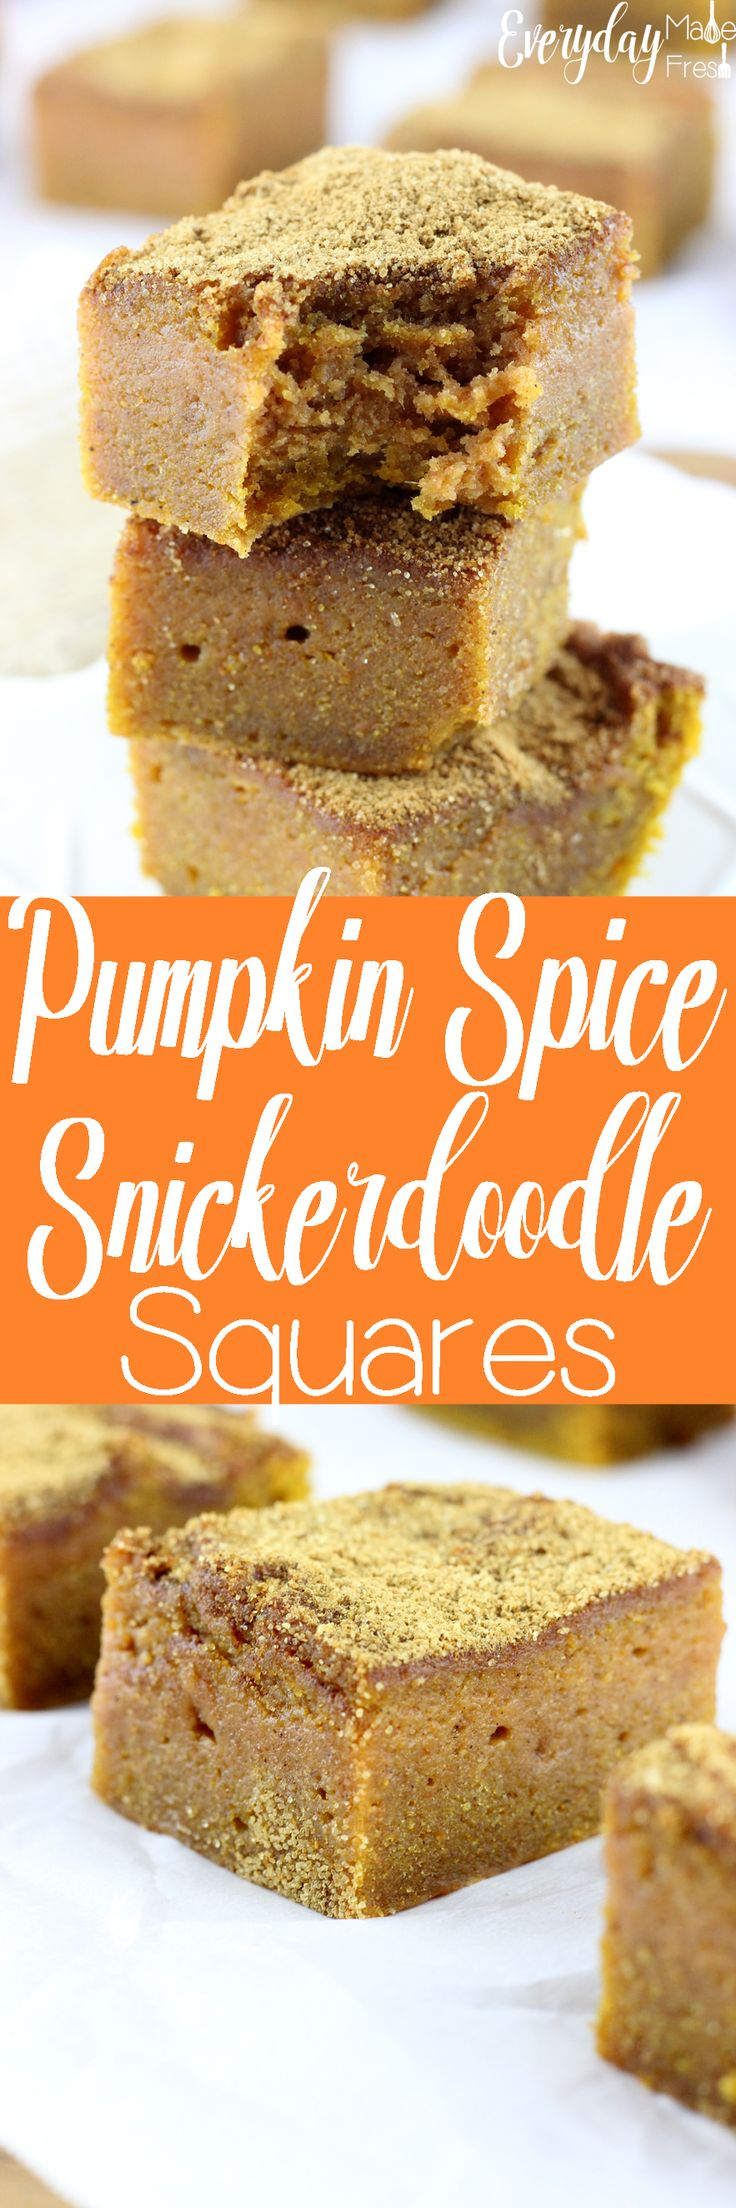 Soft and super moist, full of pumpkin spice flavor, and perfectly topped with a mixture of cinnamon and sugar goodness; these Pumpkin Spice Snickerdoodle Squares are pretty much perfection in a pan. | EverydayMadeFresh.com http://www.everydaymadefresh.com/pumpkin-spice-snickerdoodle-squares/